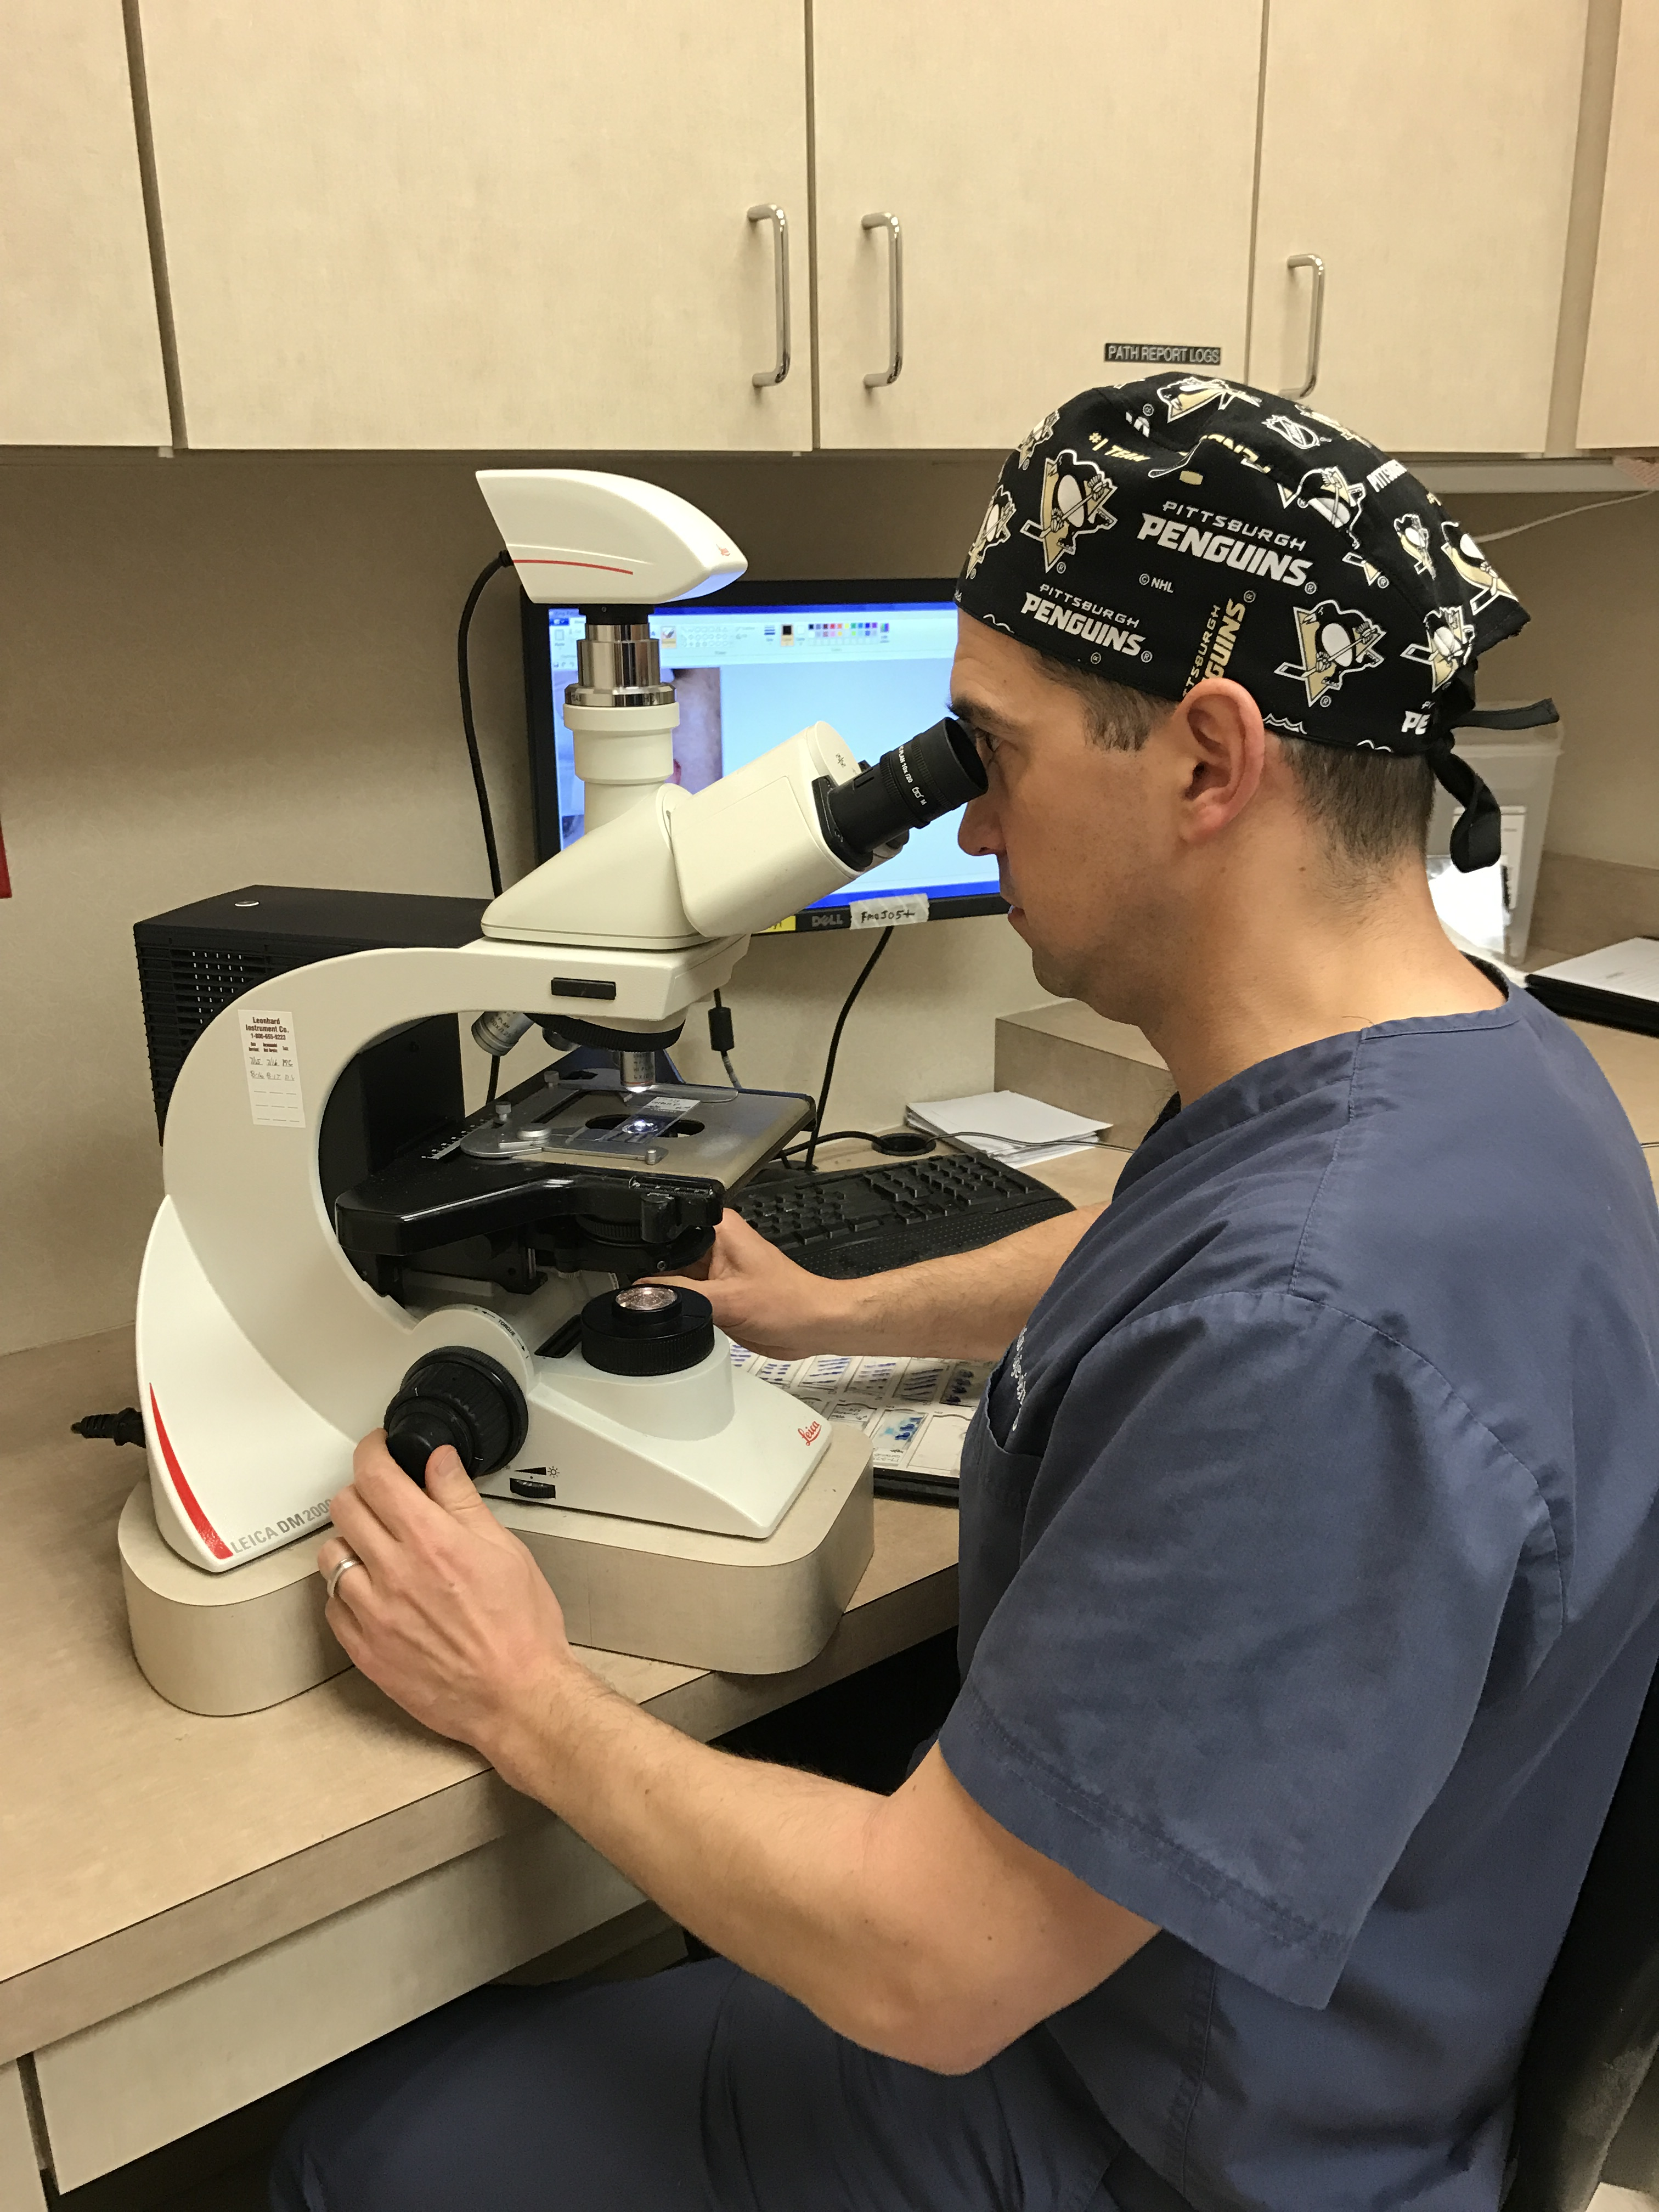 Dr. Justin Vujevich examining tissue at the microscope.